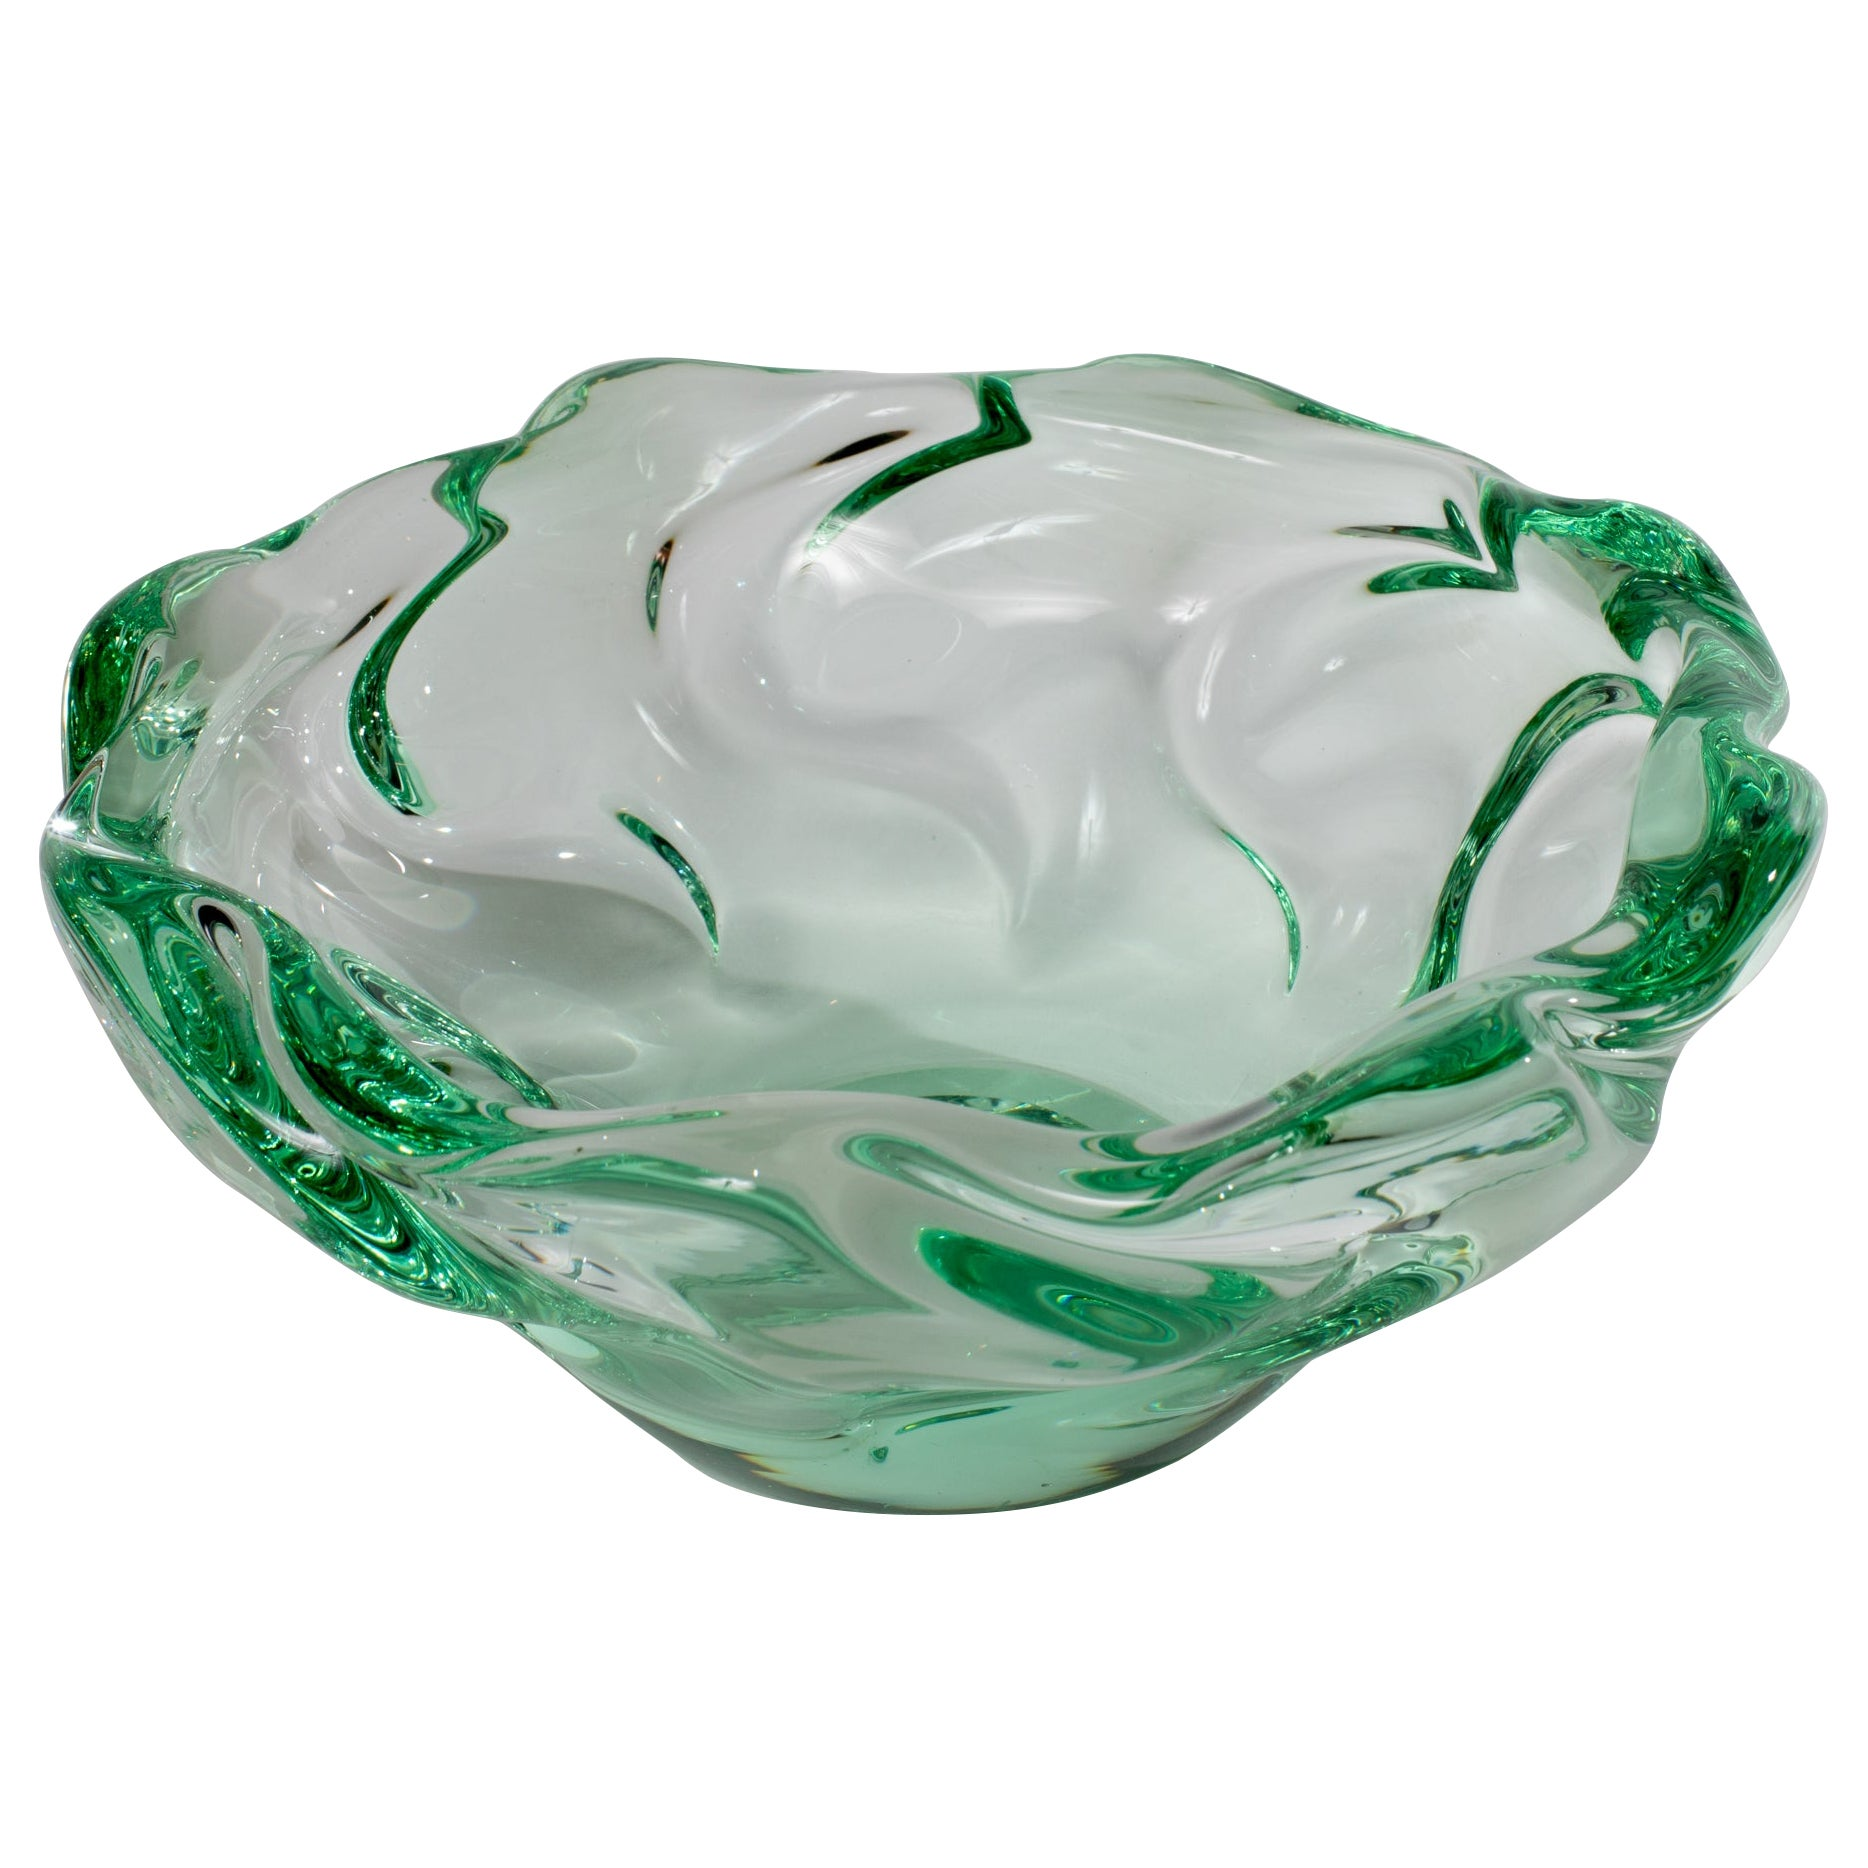 Light Green and Transparent Glass Bowl by Daum